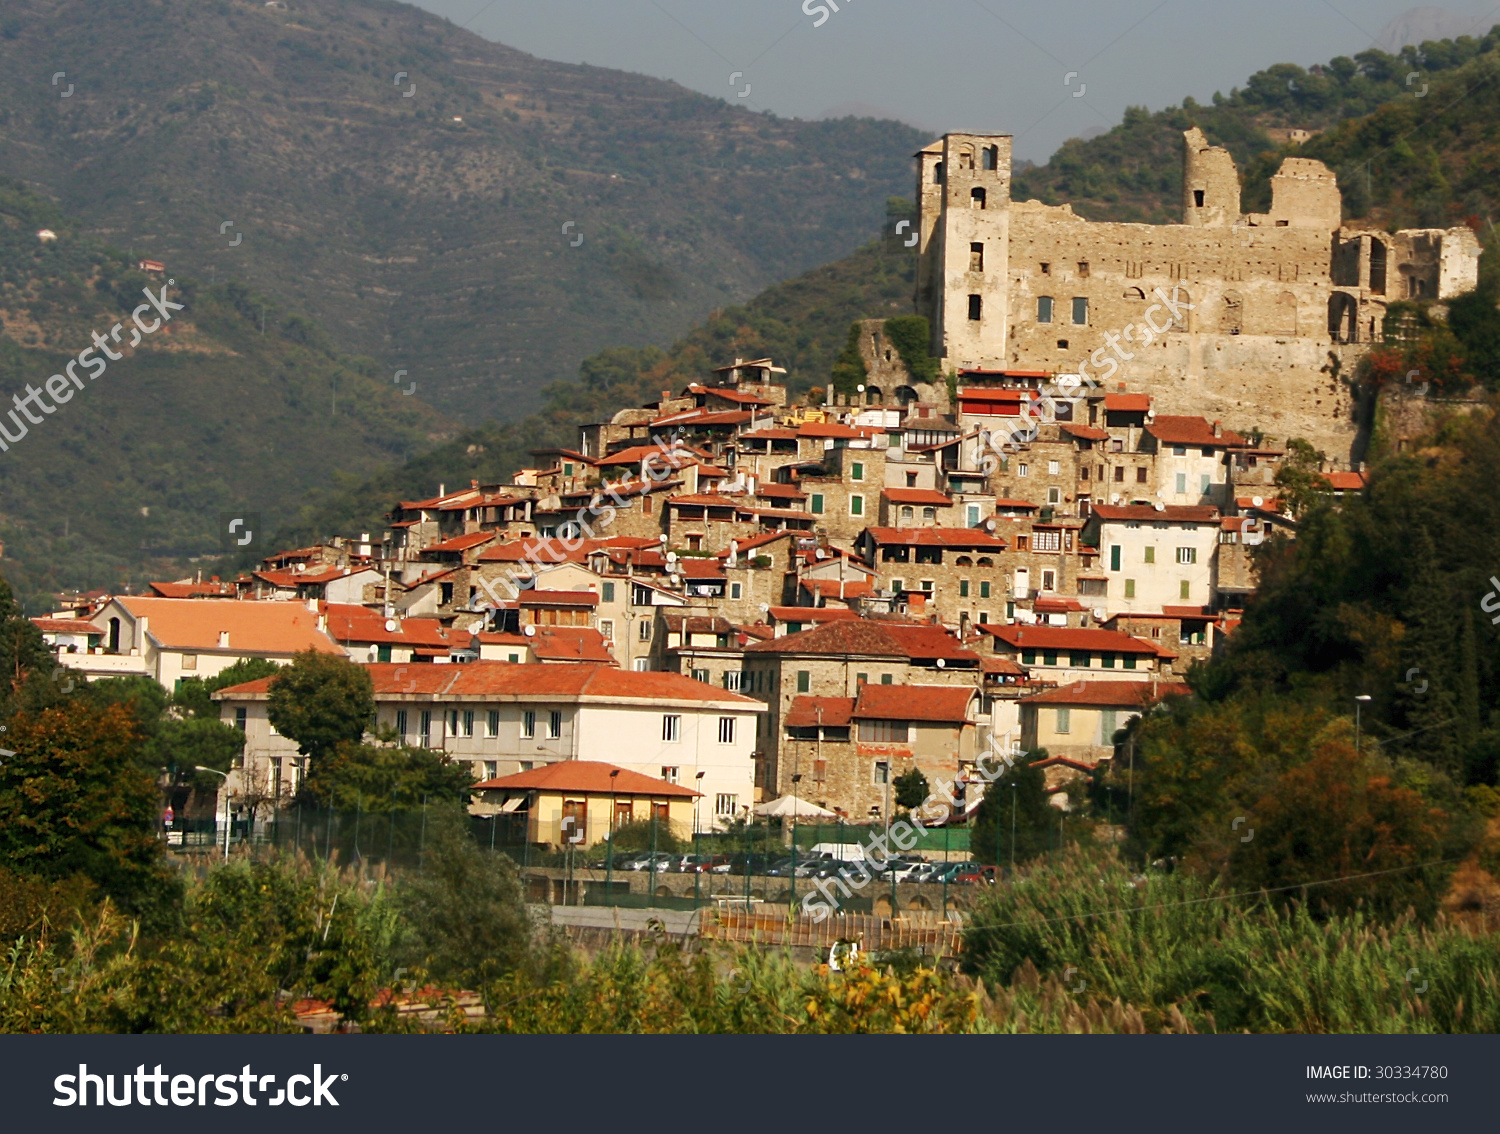 Dolceacqua, A Medieval Town In The Valle Nervia, Liguria, Italy.